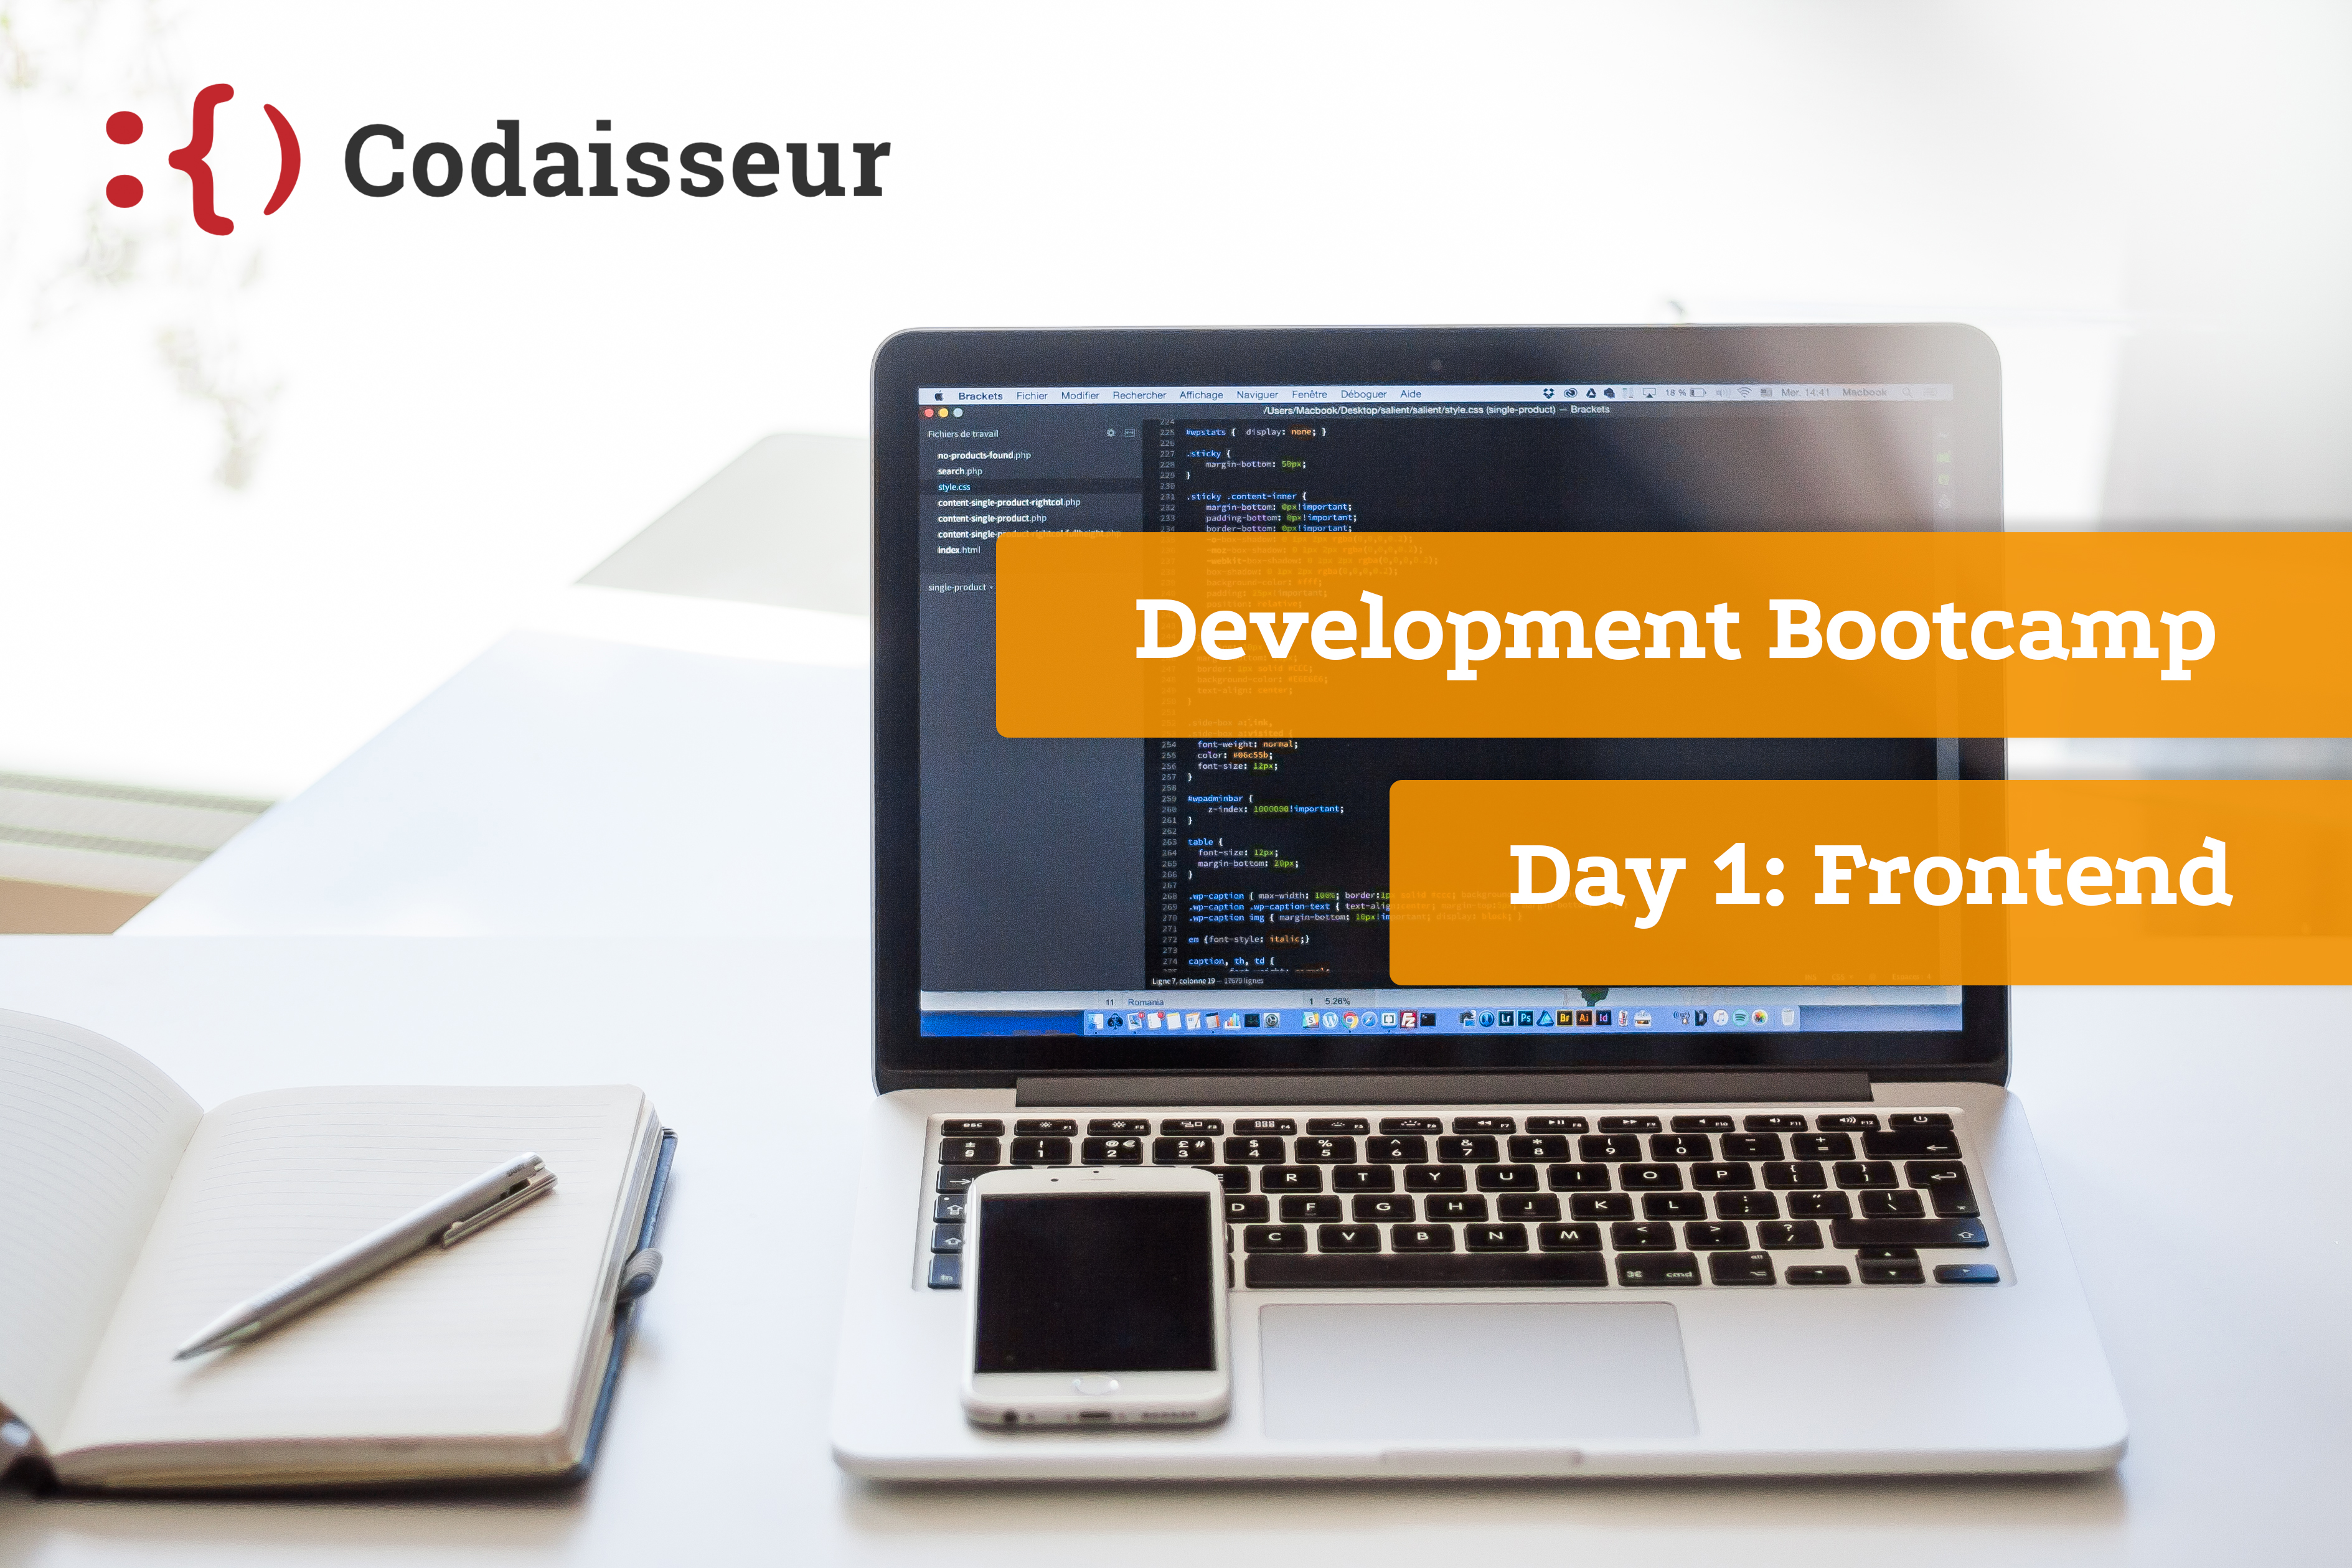 Day 1: Frontend